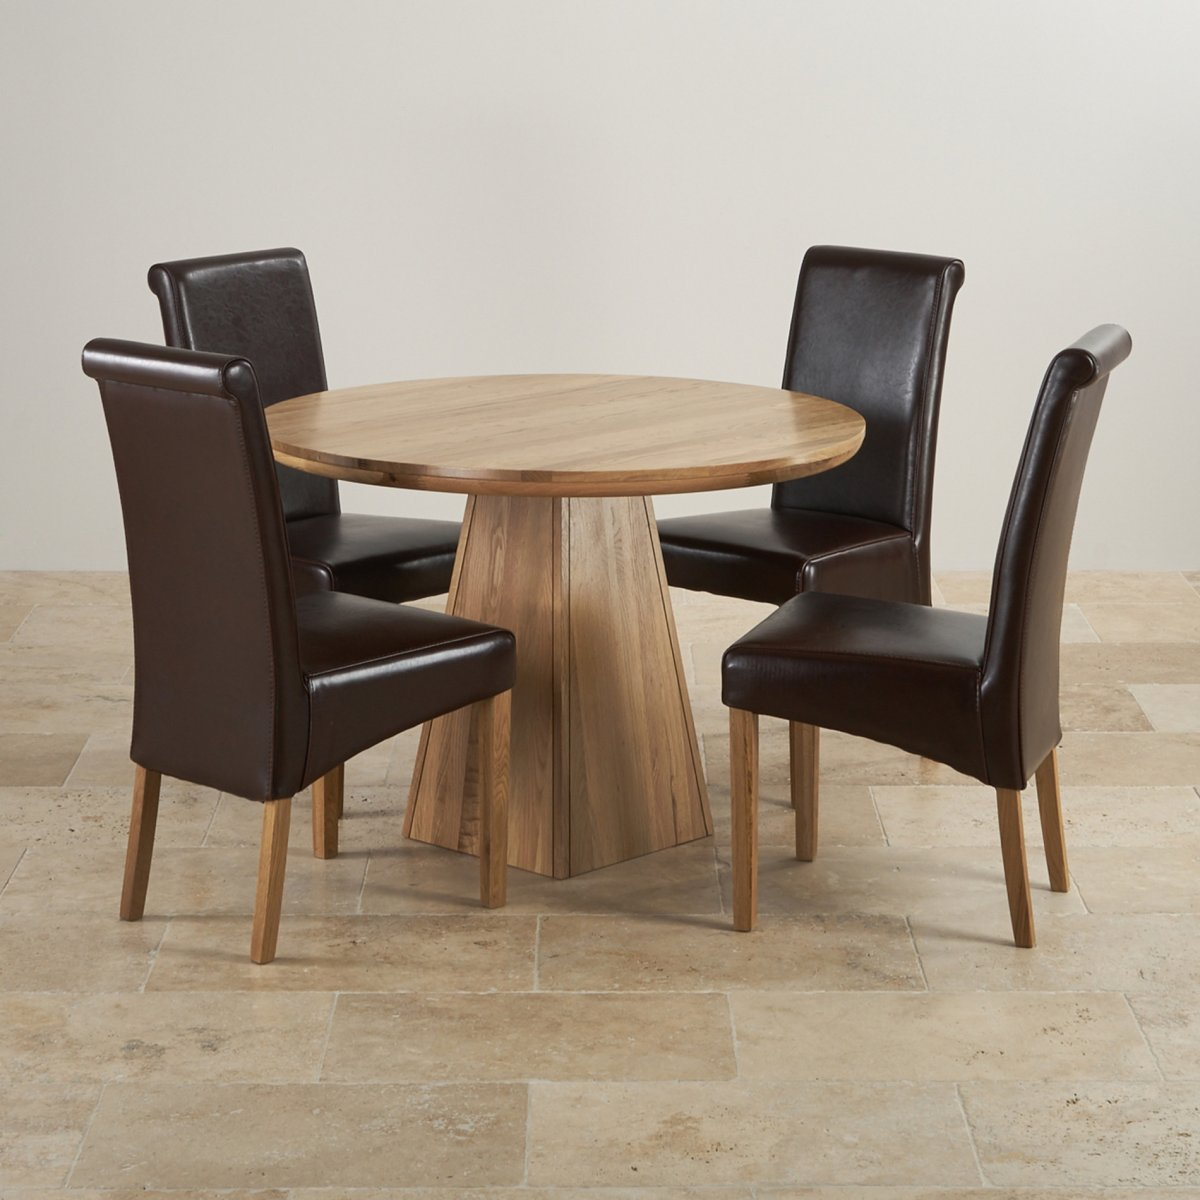 Provence solid oak 3ft 7 dining table with 4 brown chairs for Round dining table set for 4